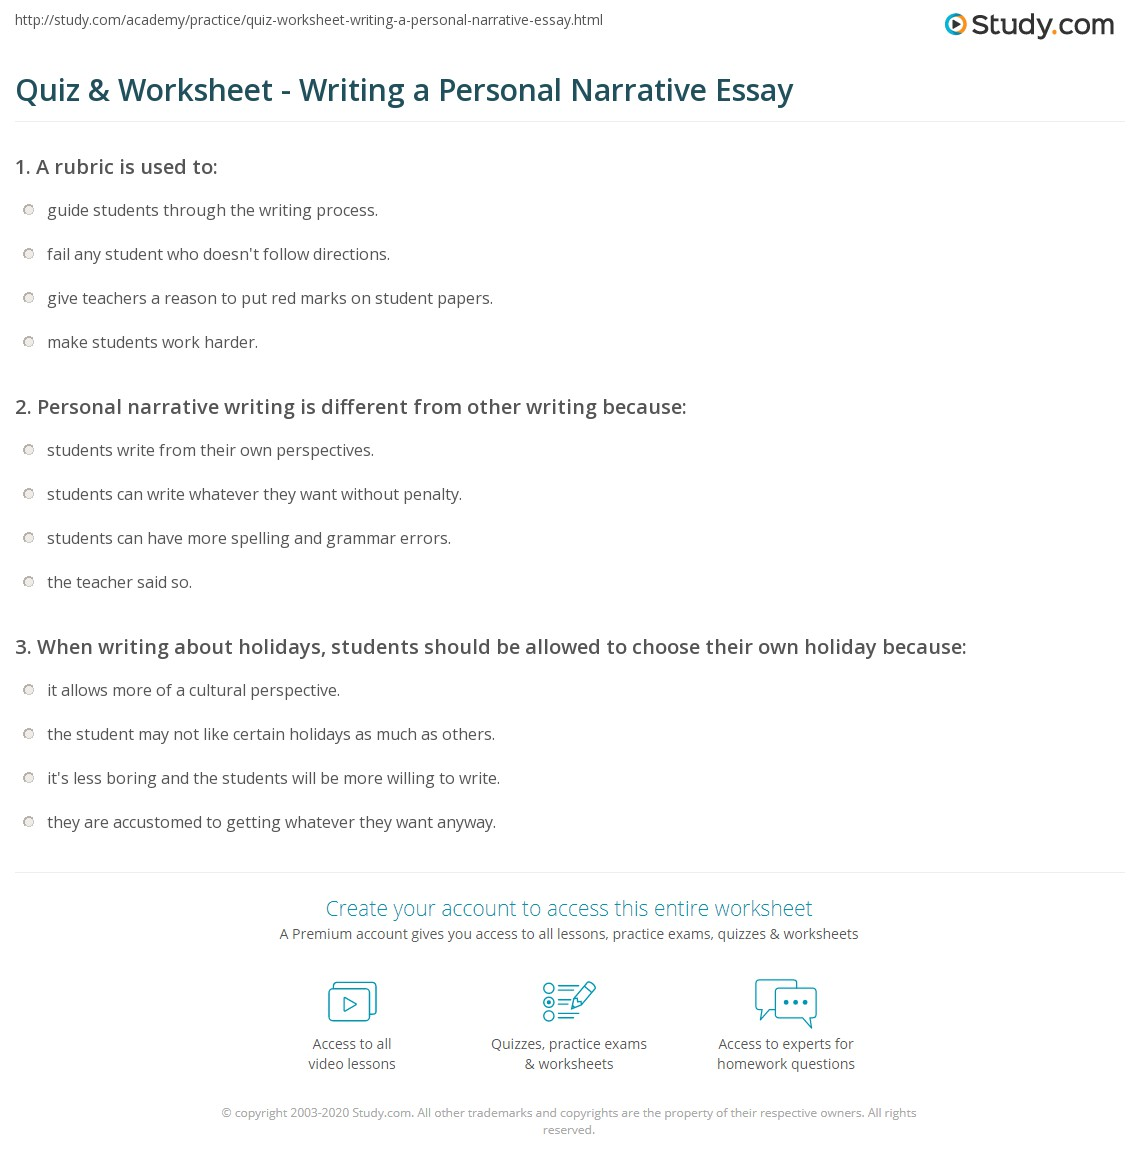 how to right a narrative essay In a narrative essay, you want to tell the story by writing about an event or experience that you've hadit's the ultimate in storytelling and requires some finesse to create a retelling that people will actually want to read unlike other types of essays, a narrative essay allows you to express yourself.